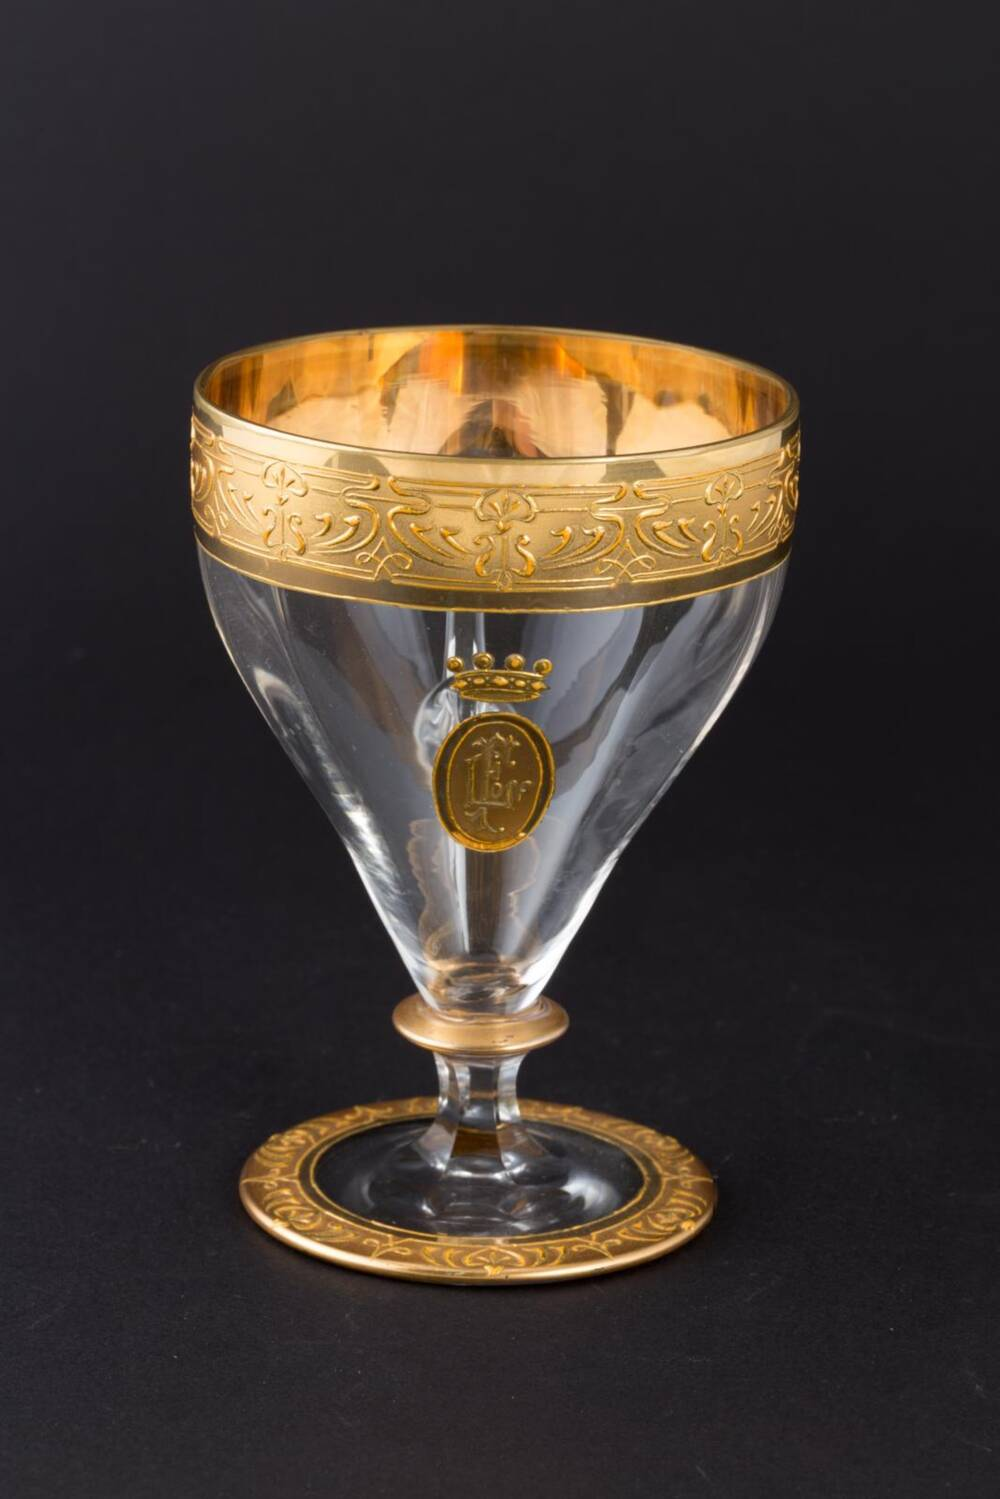 A custard glass from Fyvie Castle. It has a gilt-decorated rim and base. On the side is the gold FL monogram, with a gold crown above.